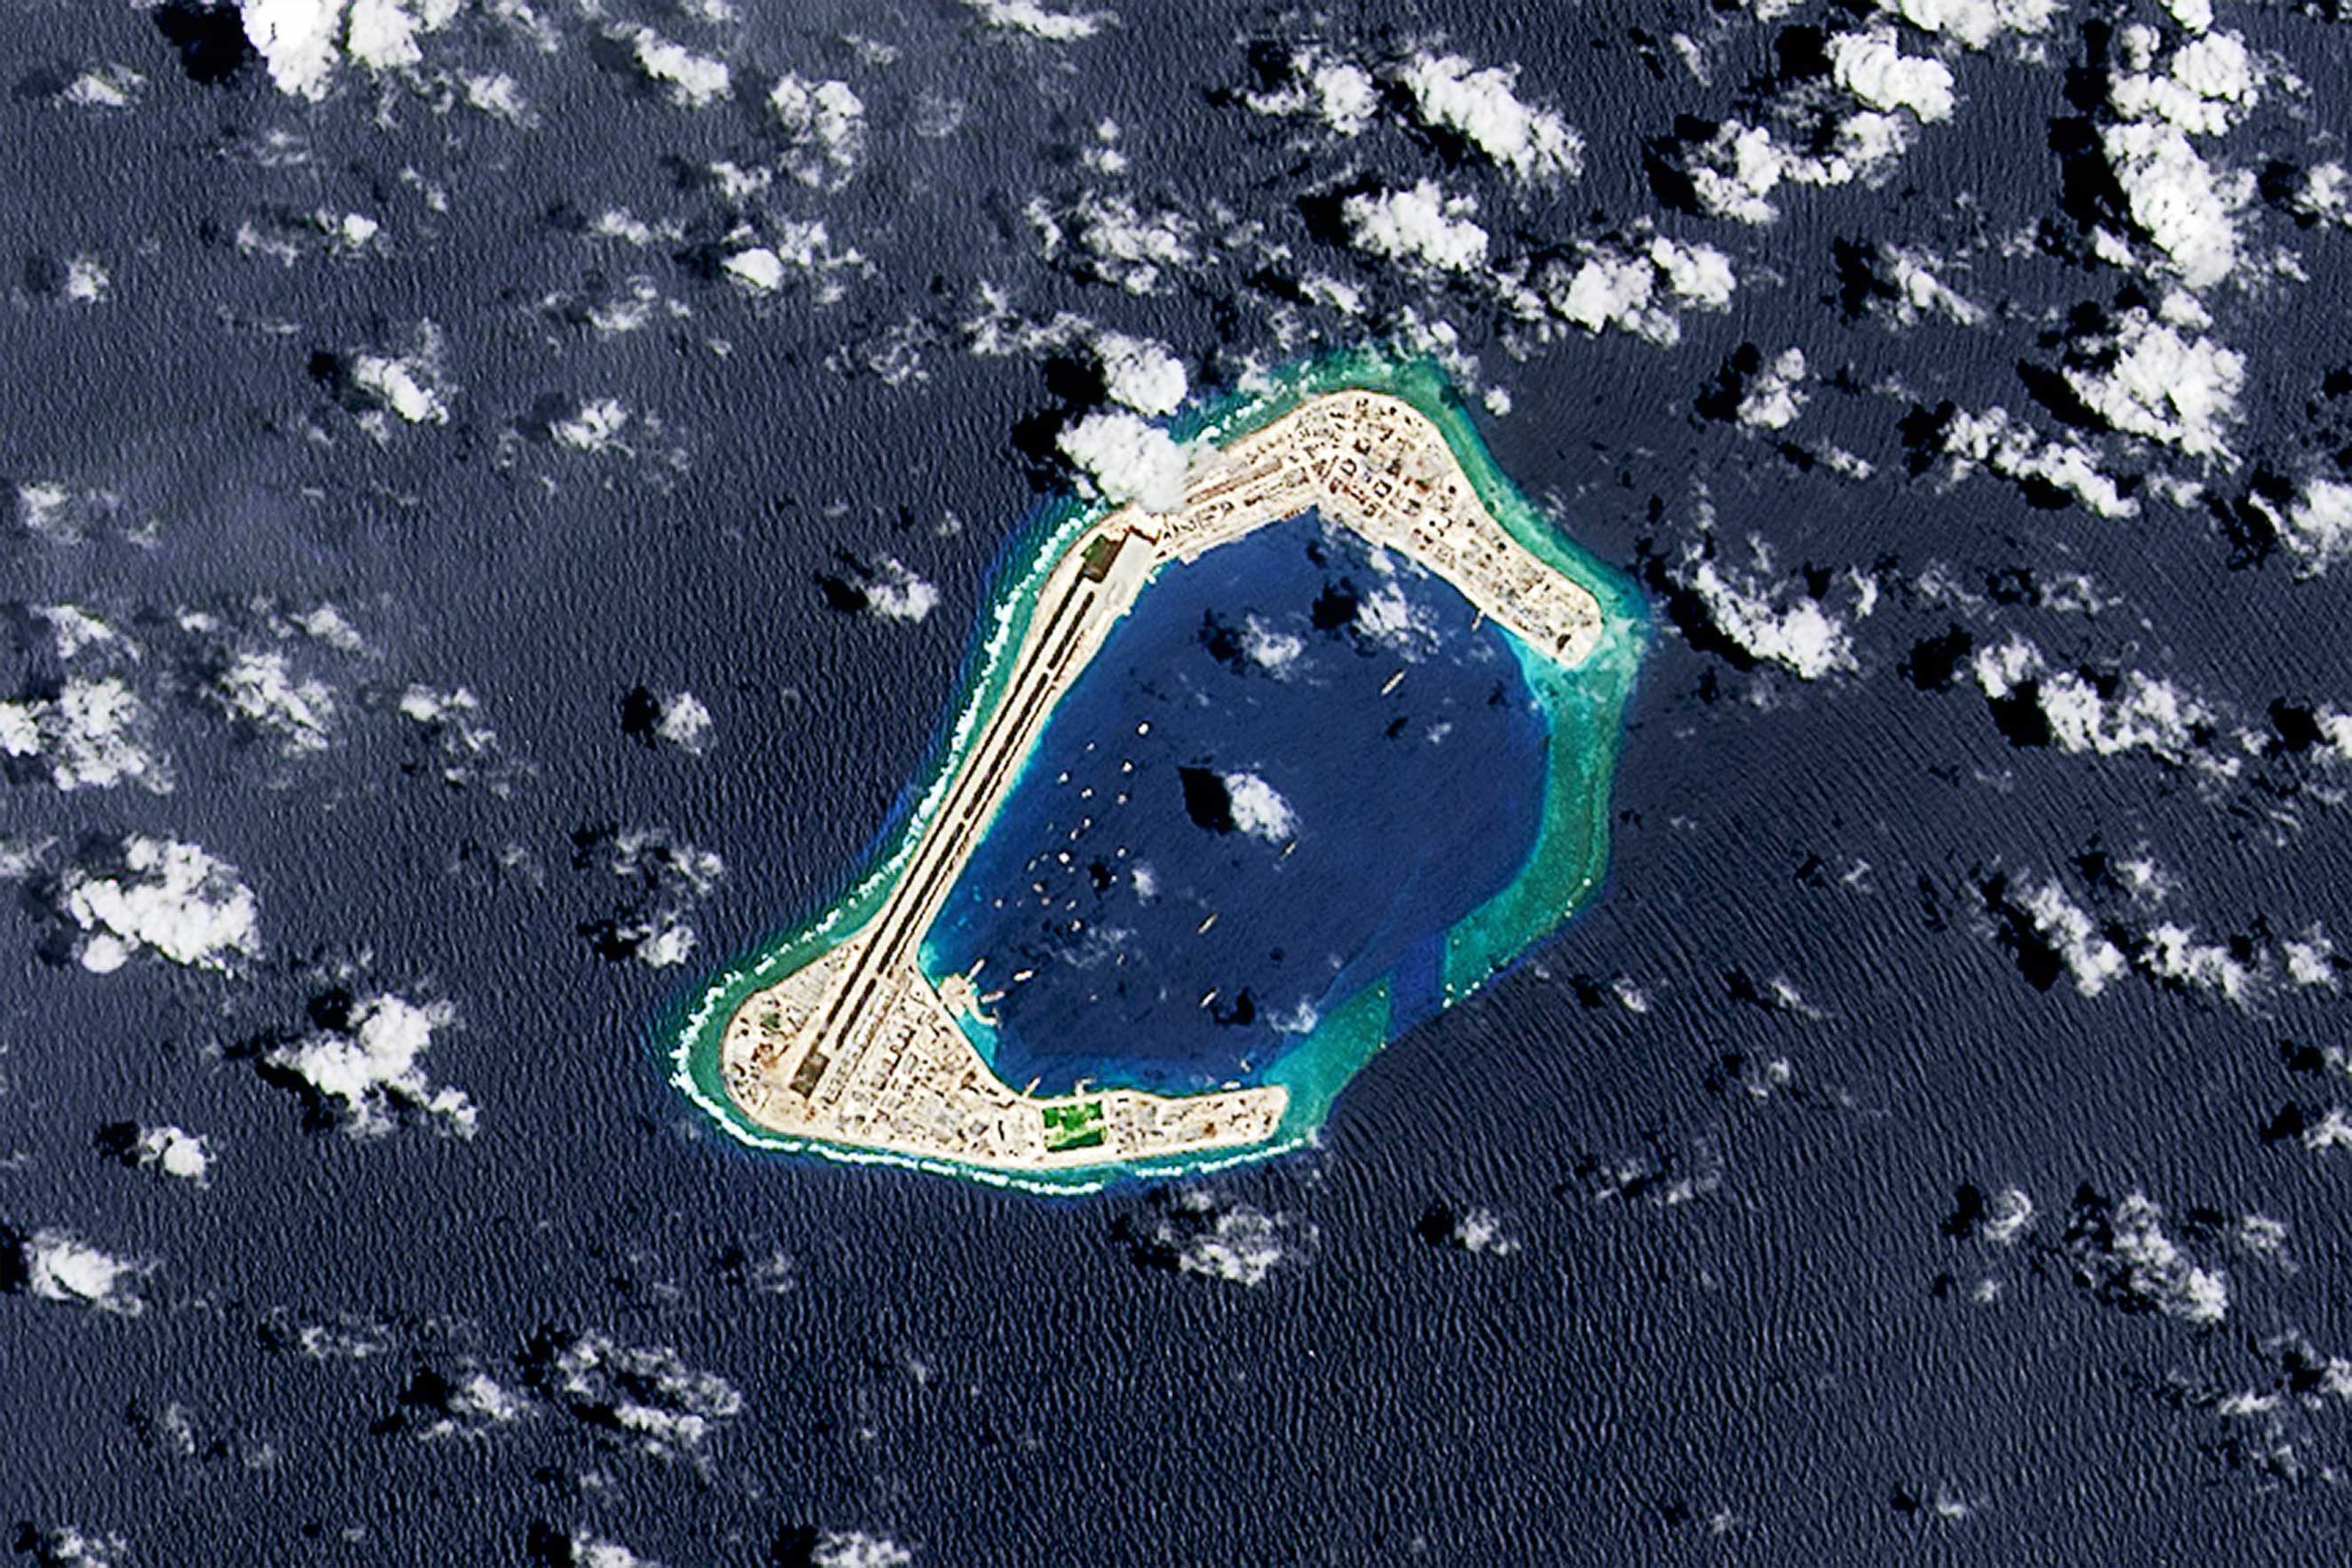 A satellite image of Subi Reef, where an artificial island is being developed by Beijing in the South China Sea.